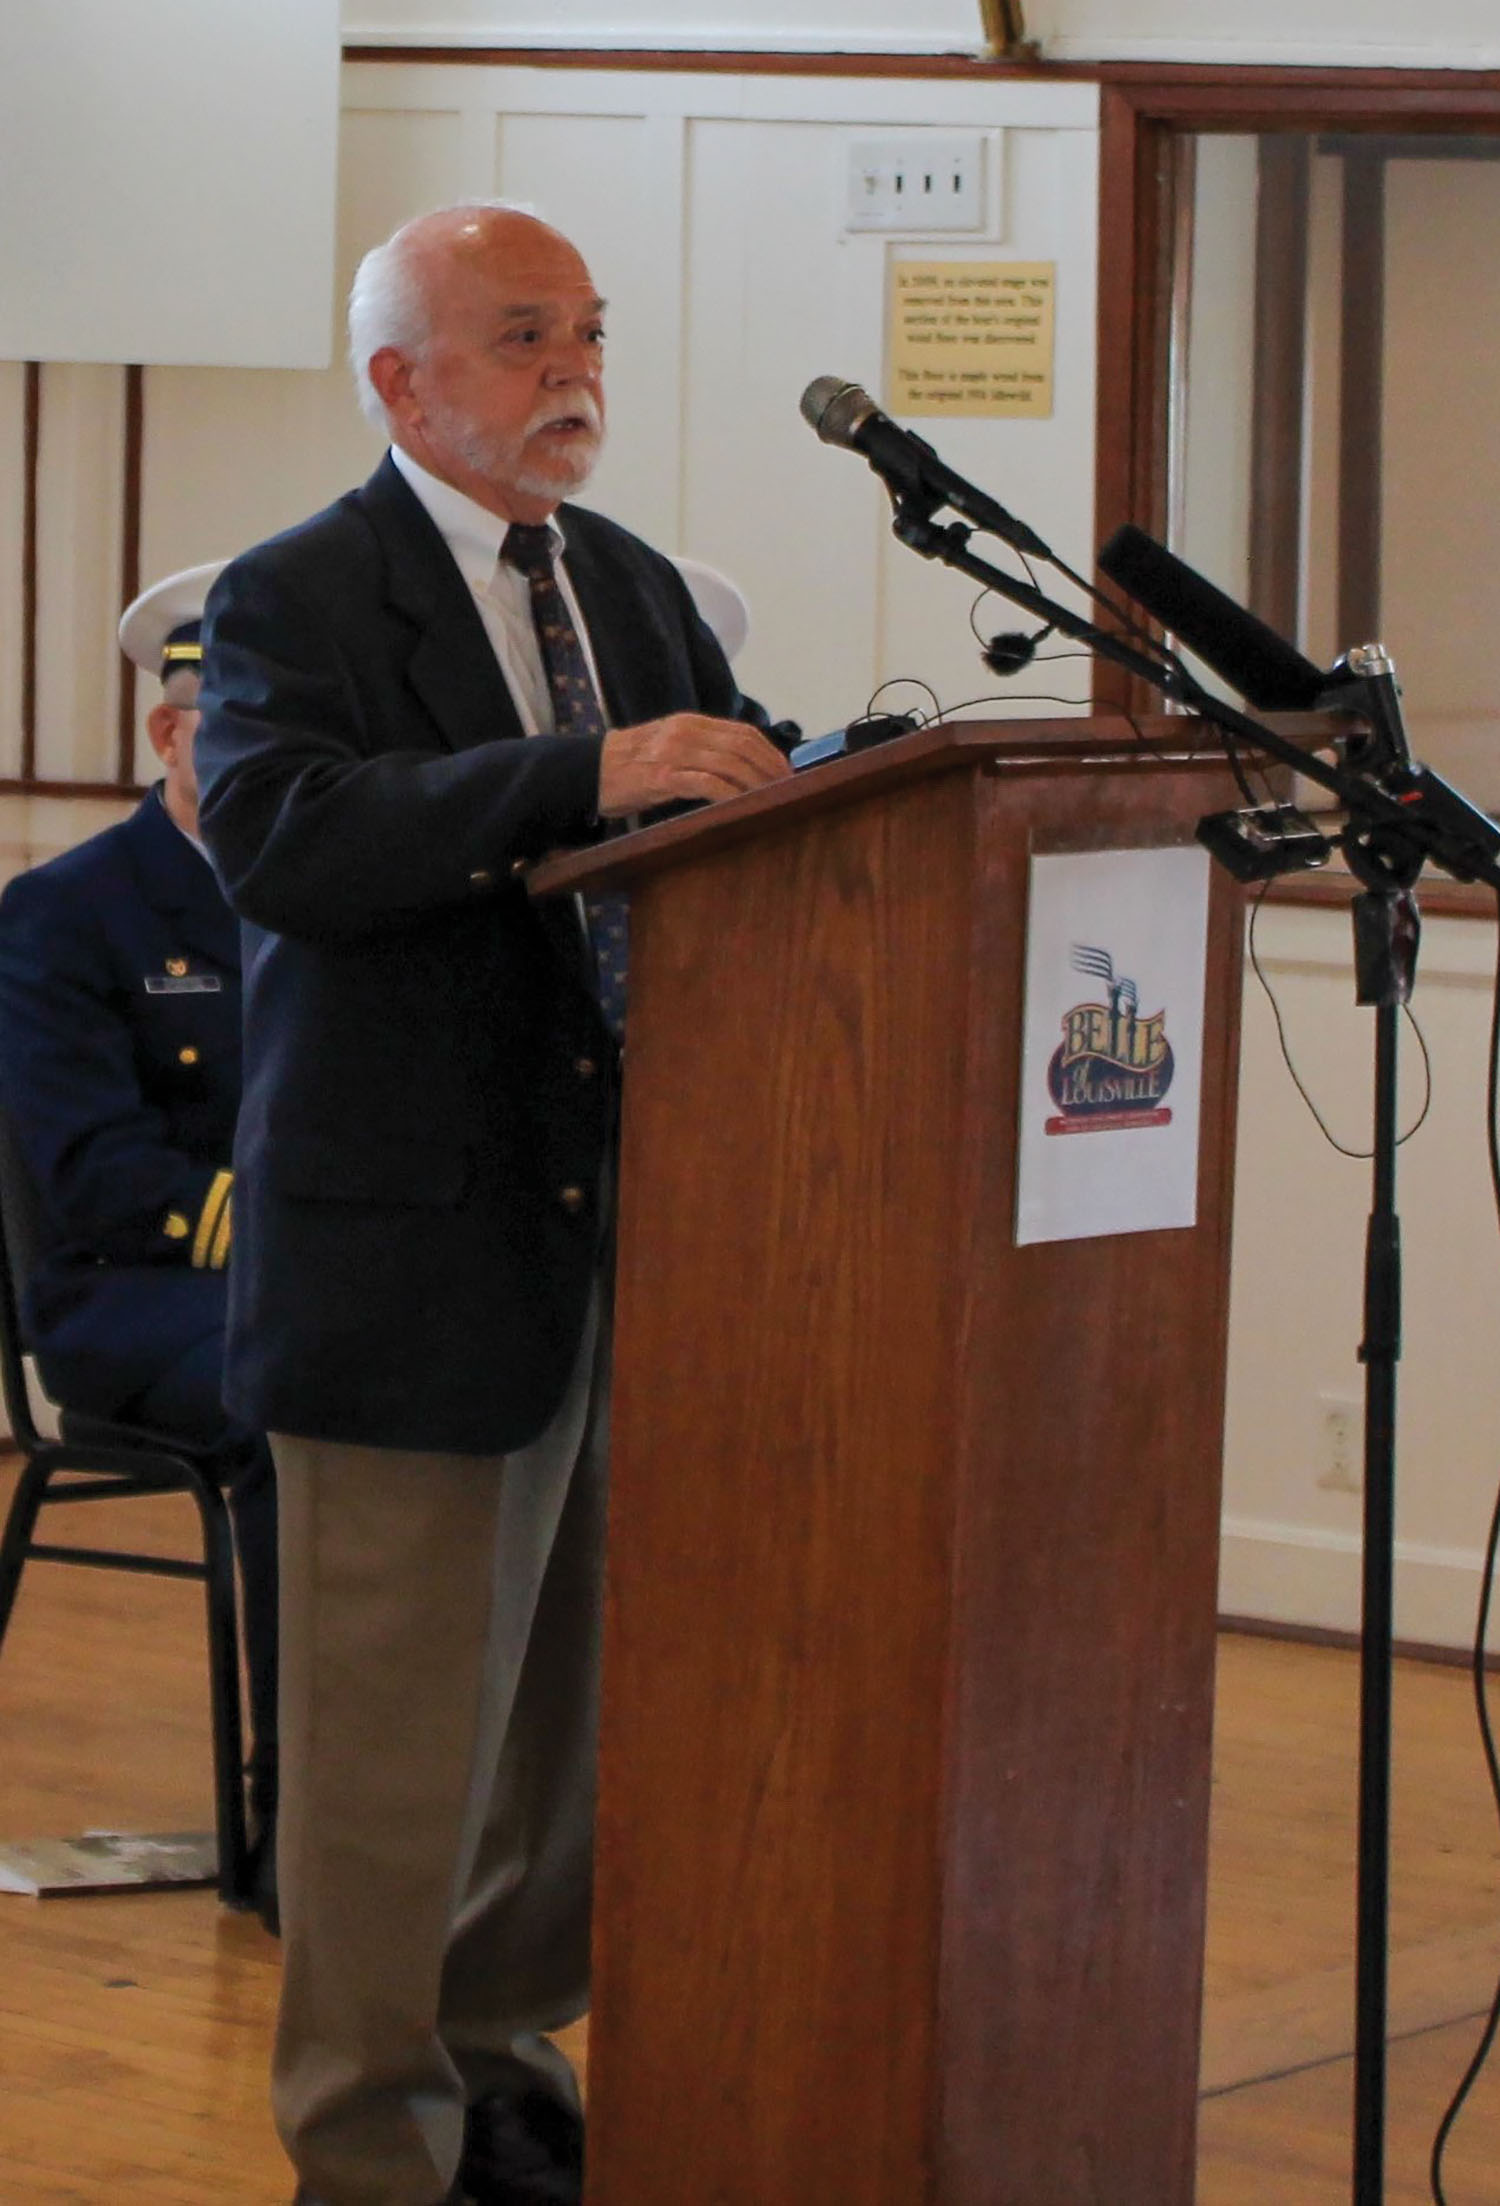 """Charles """"Chuck"""" Parrish speaks in a ceremony in 2017 aboard the Belle of Louisville. (Photo courtesy of the Belle of Louisville)"""